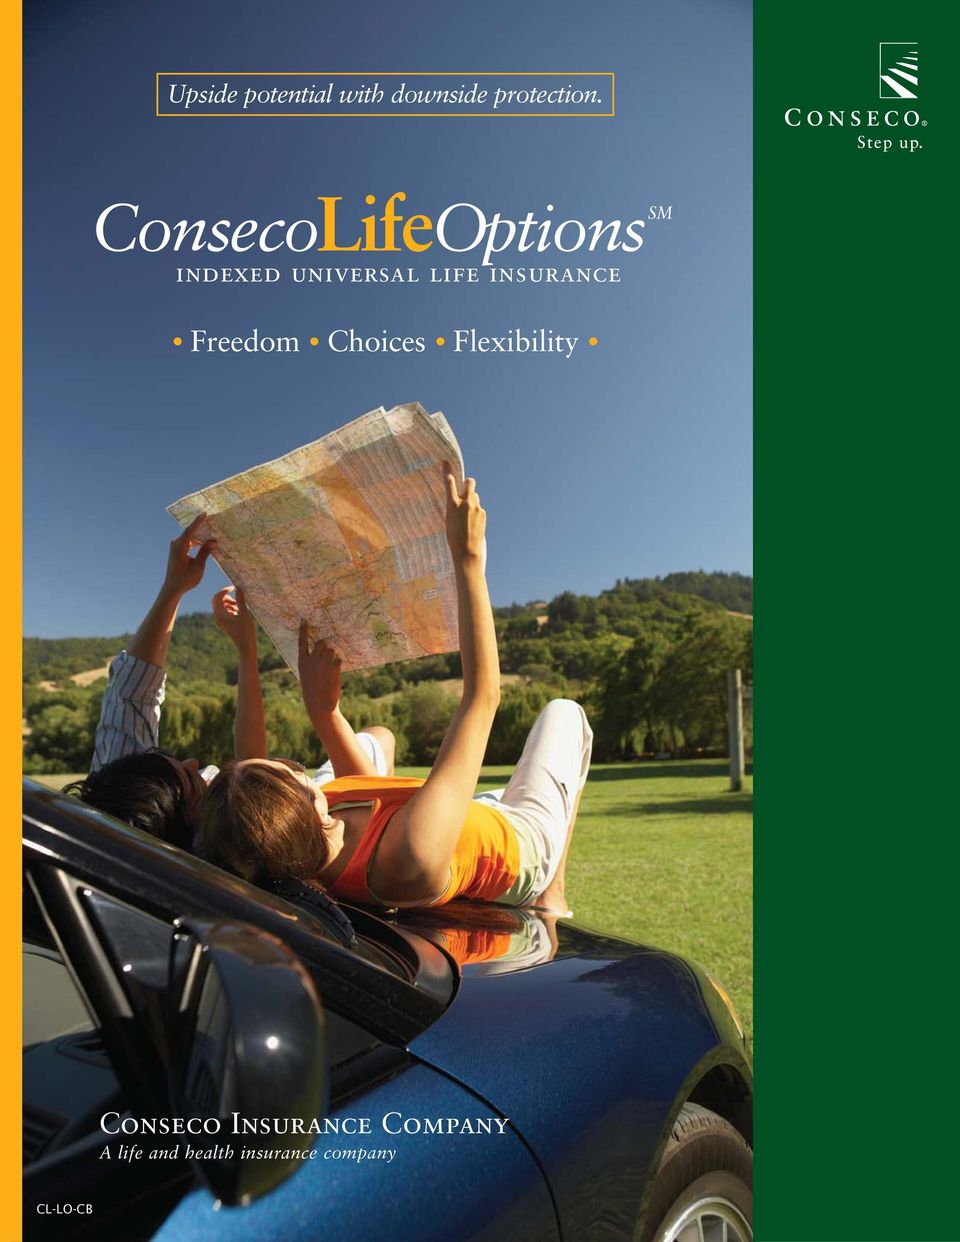 insurance Freedom Choices Flexibility Conseco